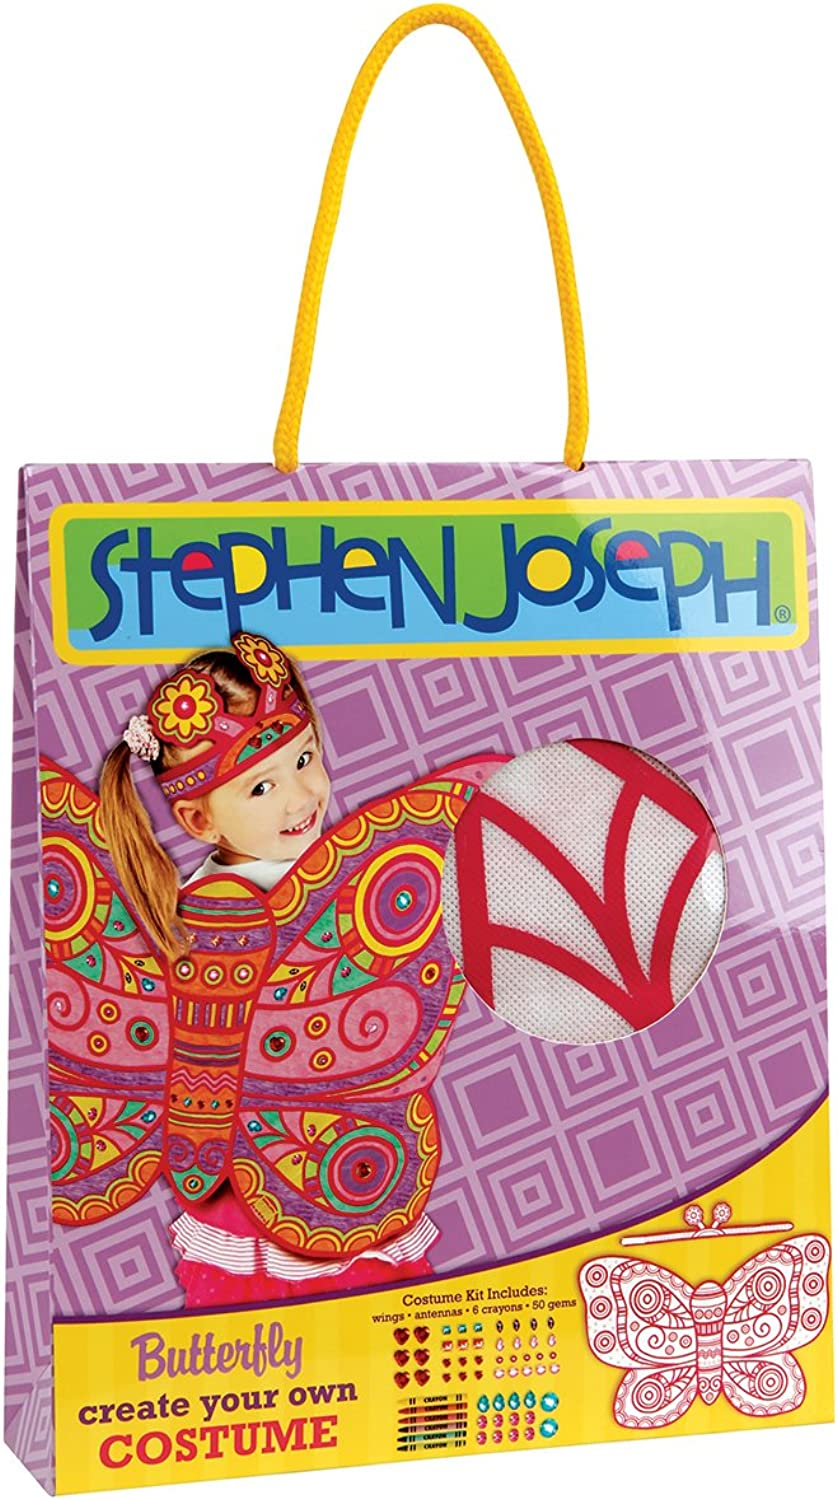 Stephen Joseph Create Your Own Costume, Butterfly